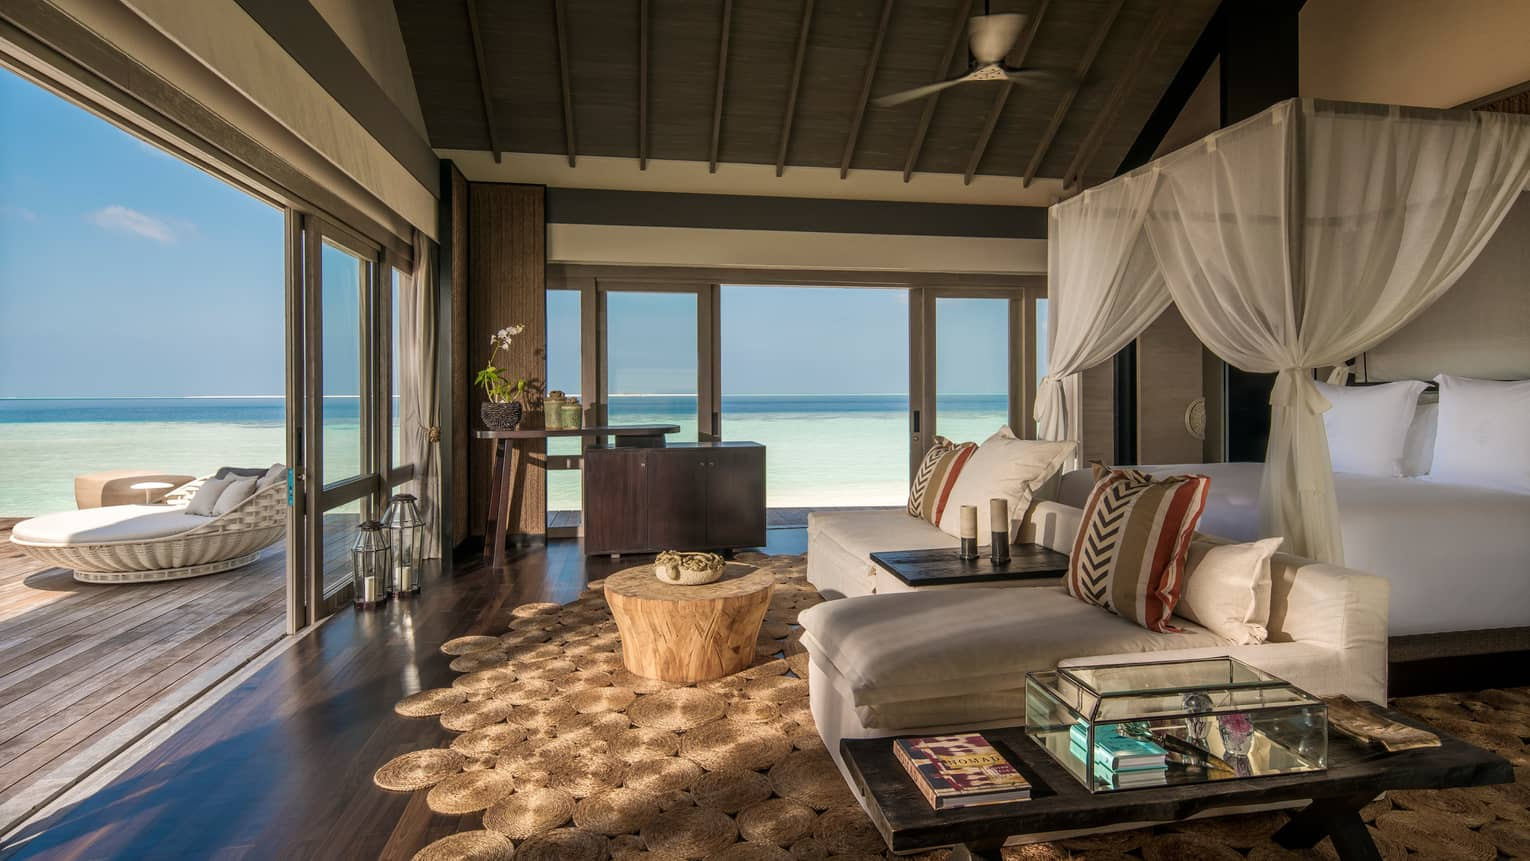 Three-Bedroom Beach Villa canopy bed. chaise lounge chairs across from open sliding doors to patio